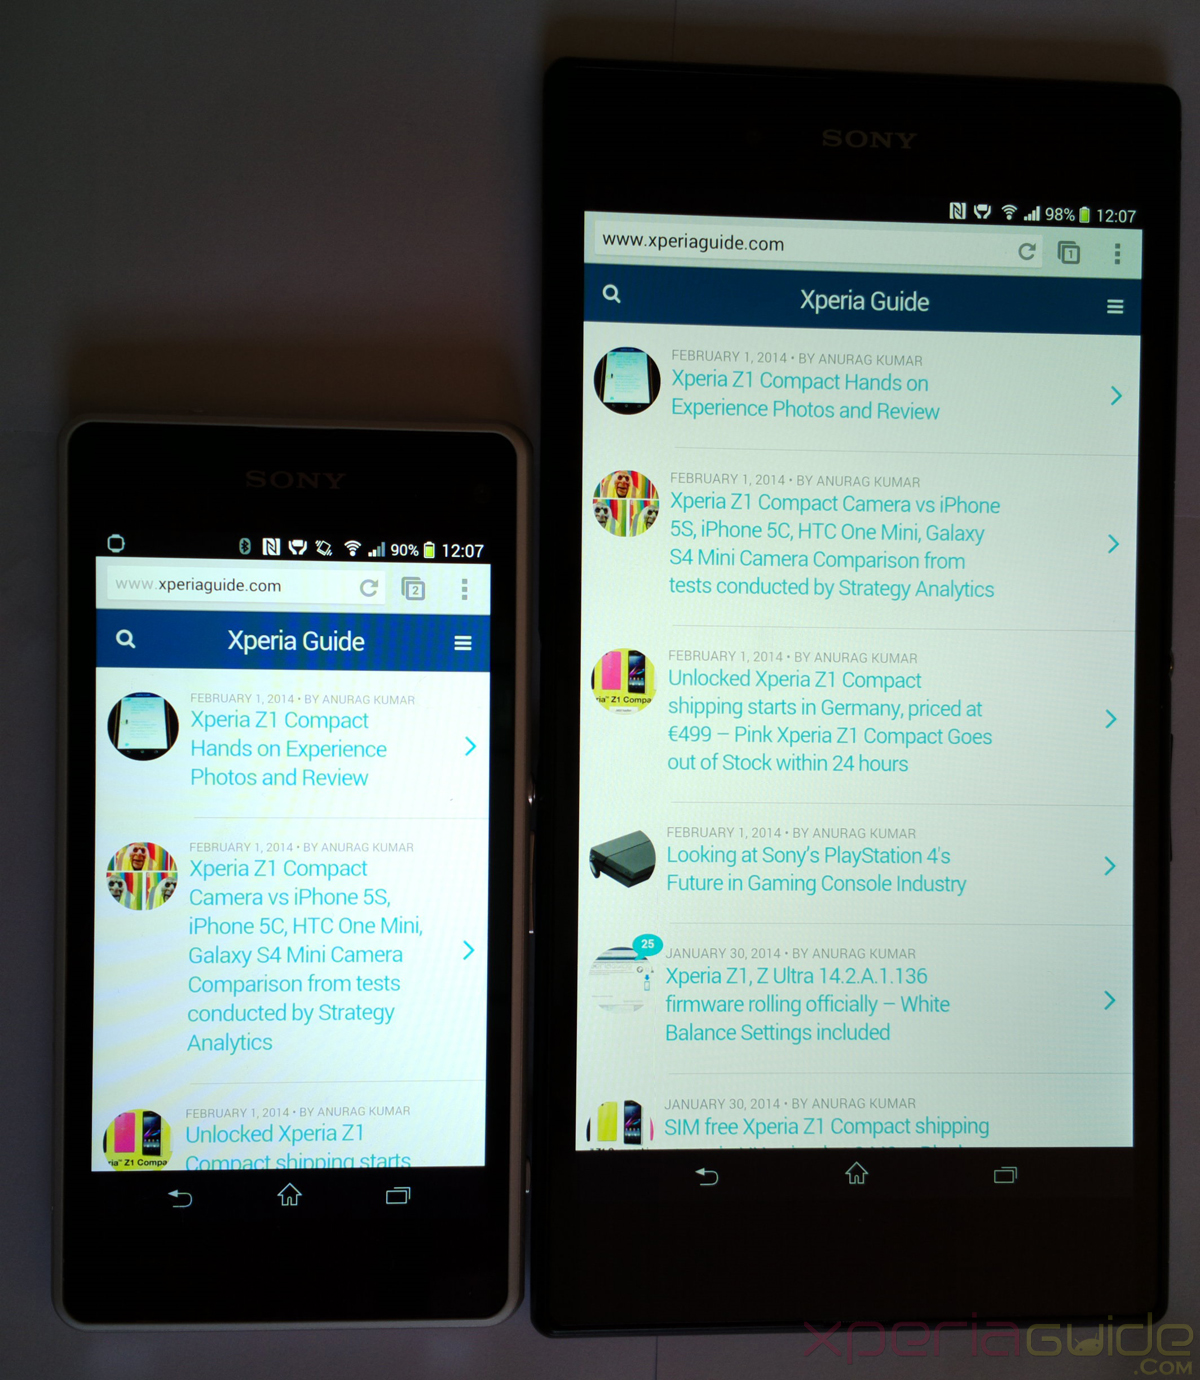 Xperia Z1 Compact vs Xperia Z Ultra Screen Display Comparison